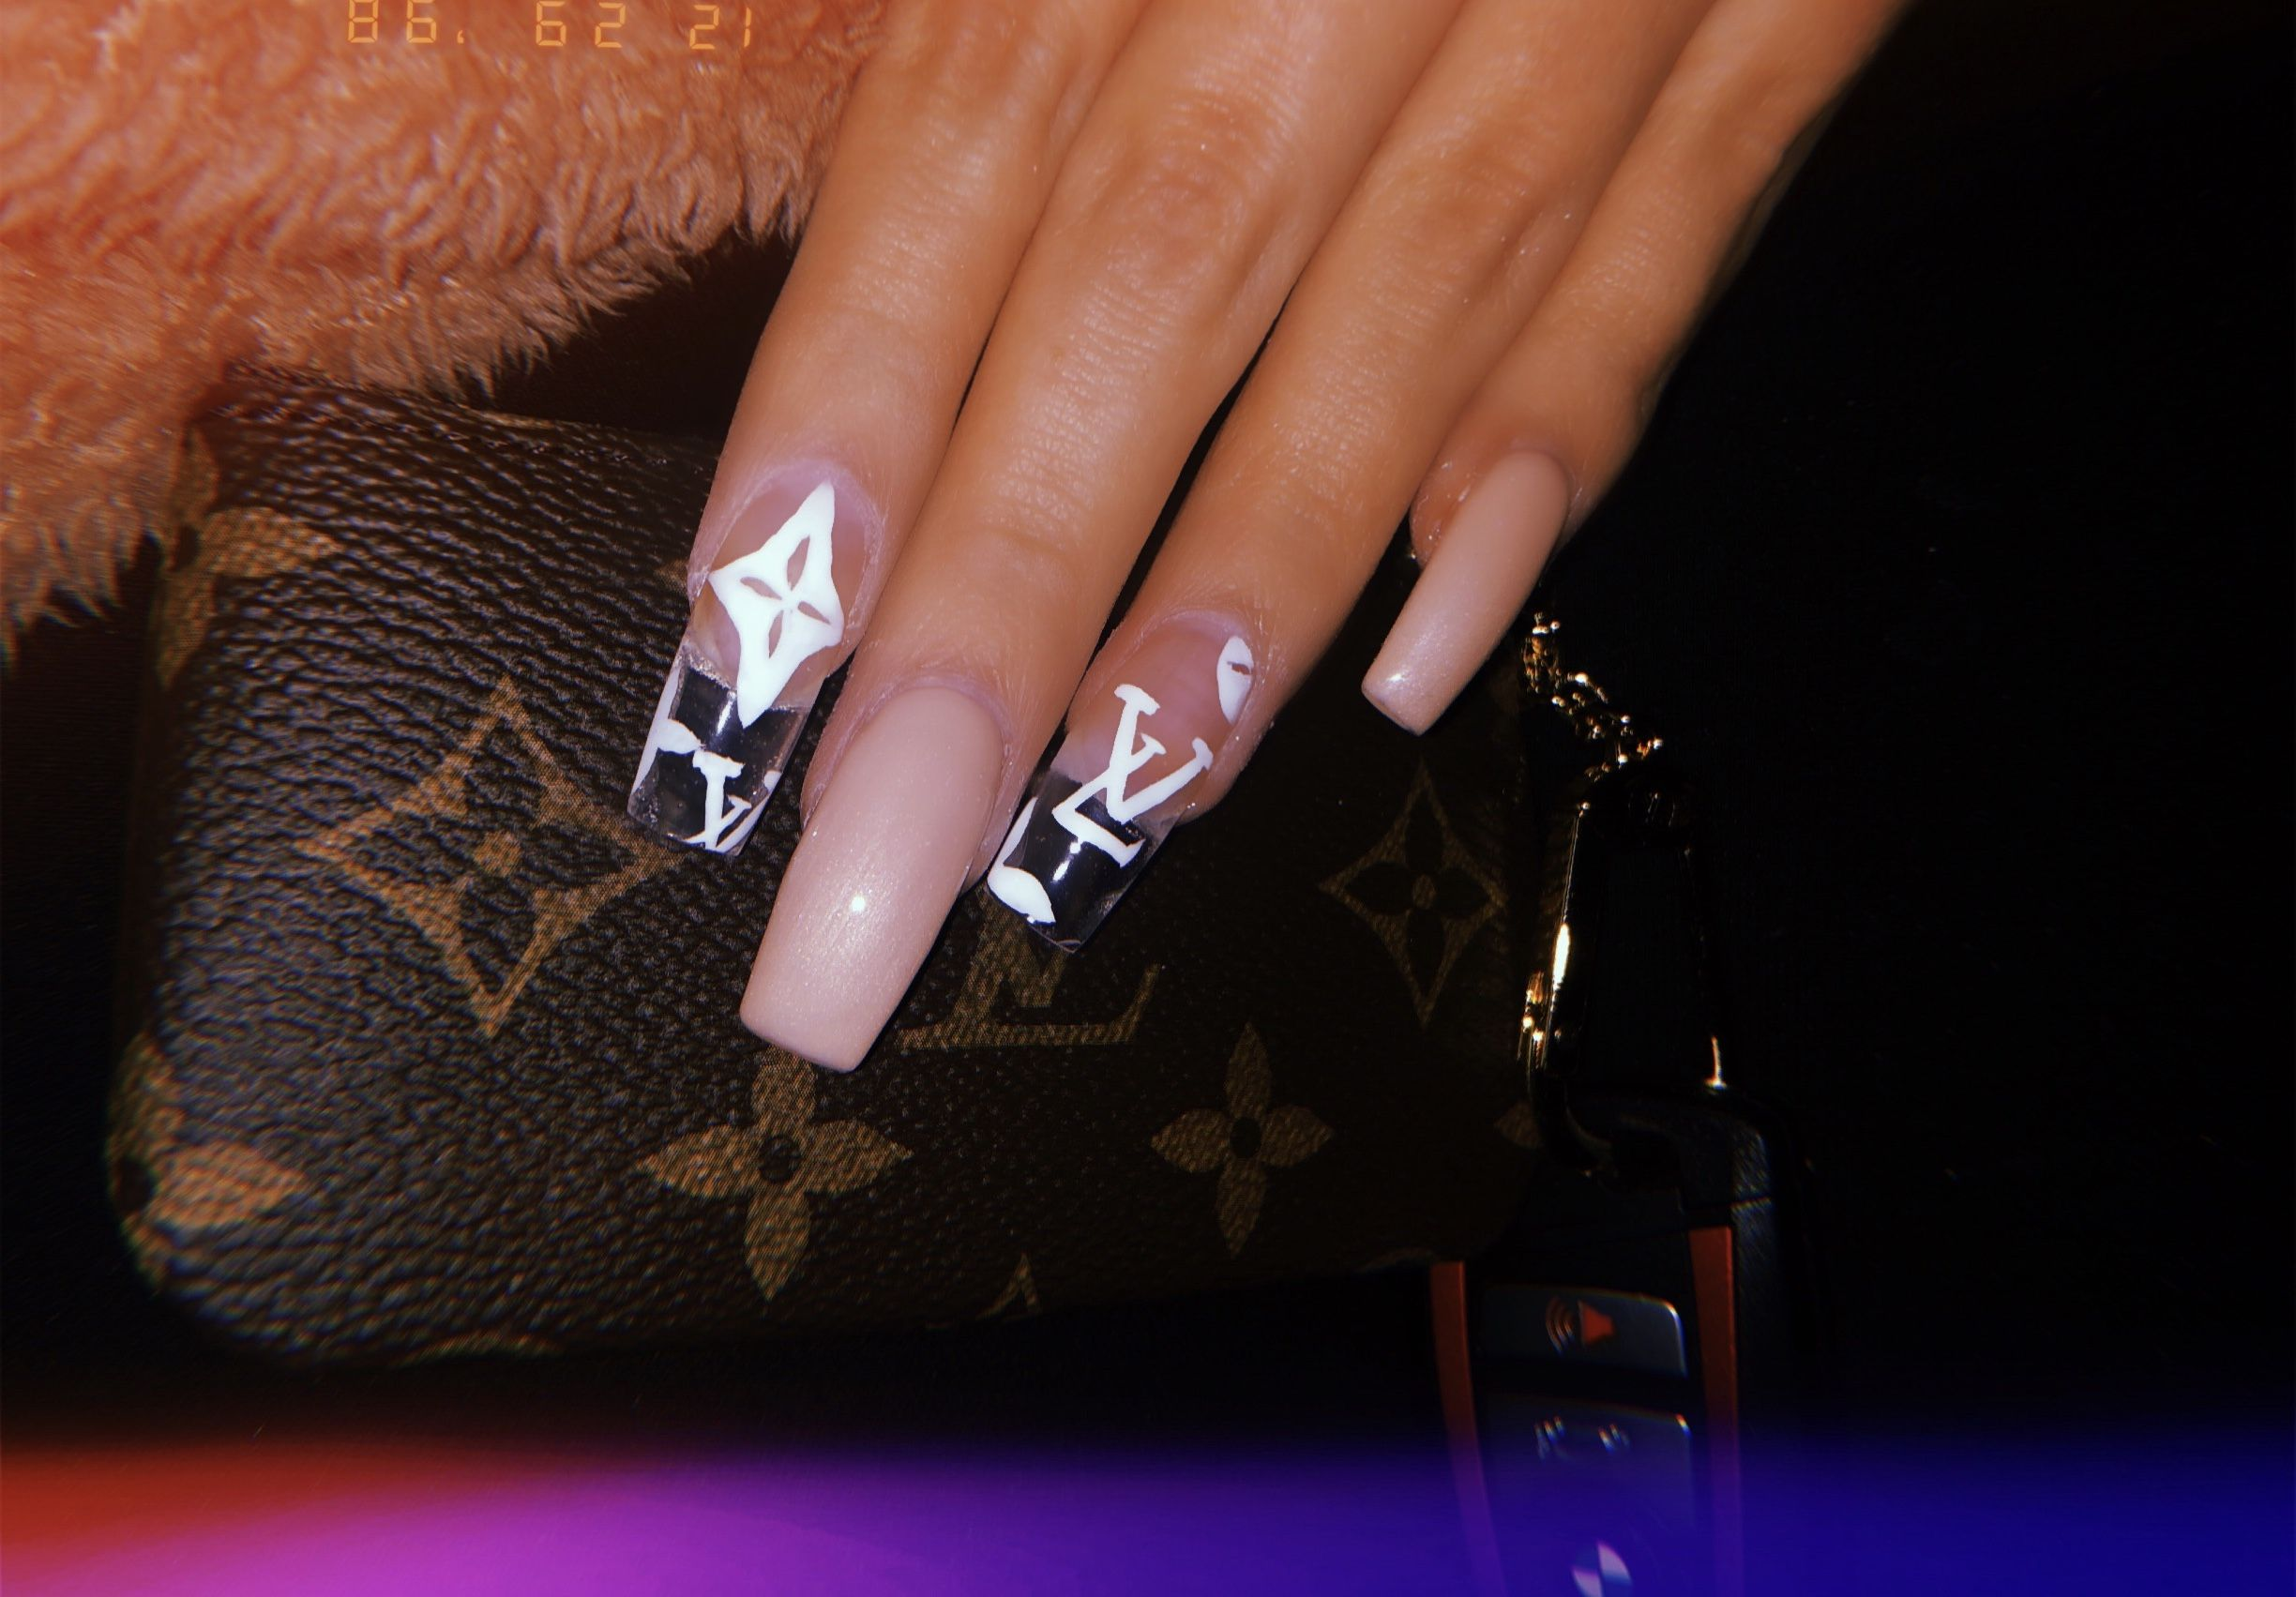 Louis Vuitton Nails Louis Vuitton Nails Nails Gucci Nails